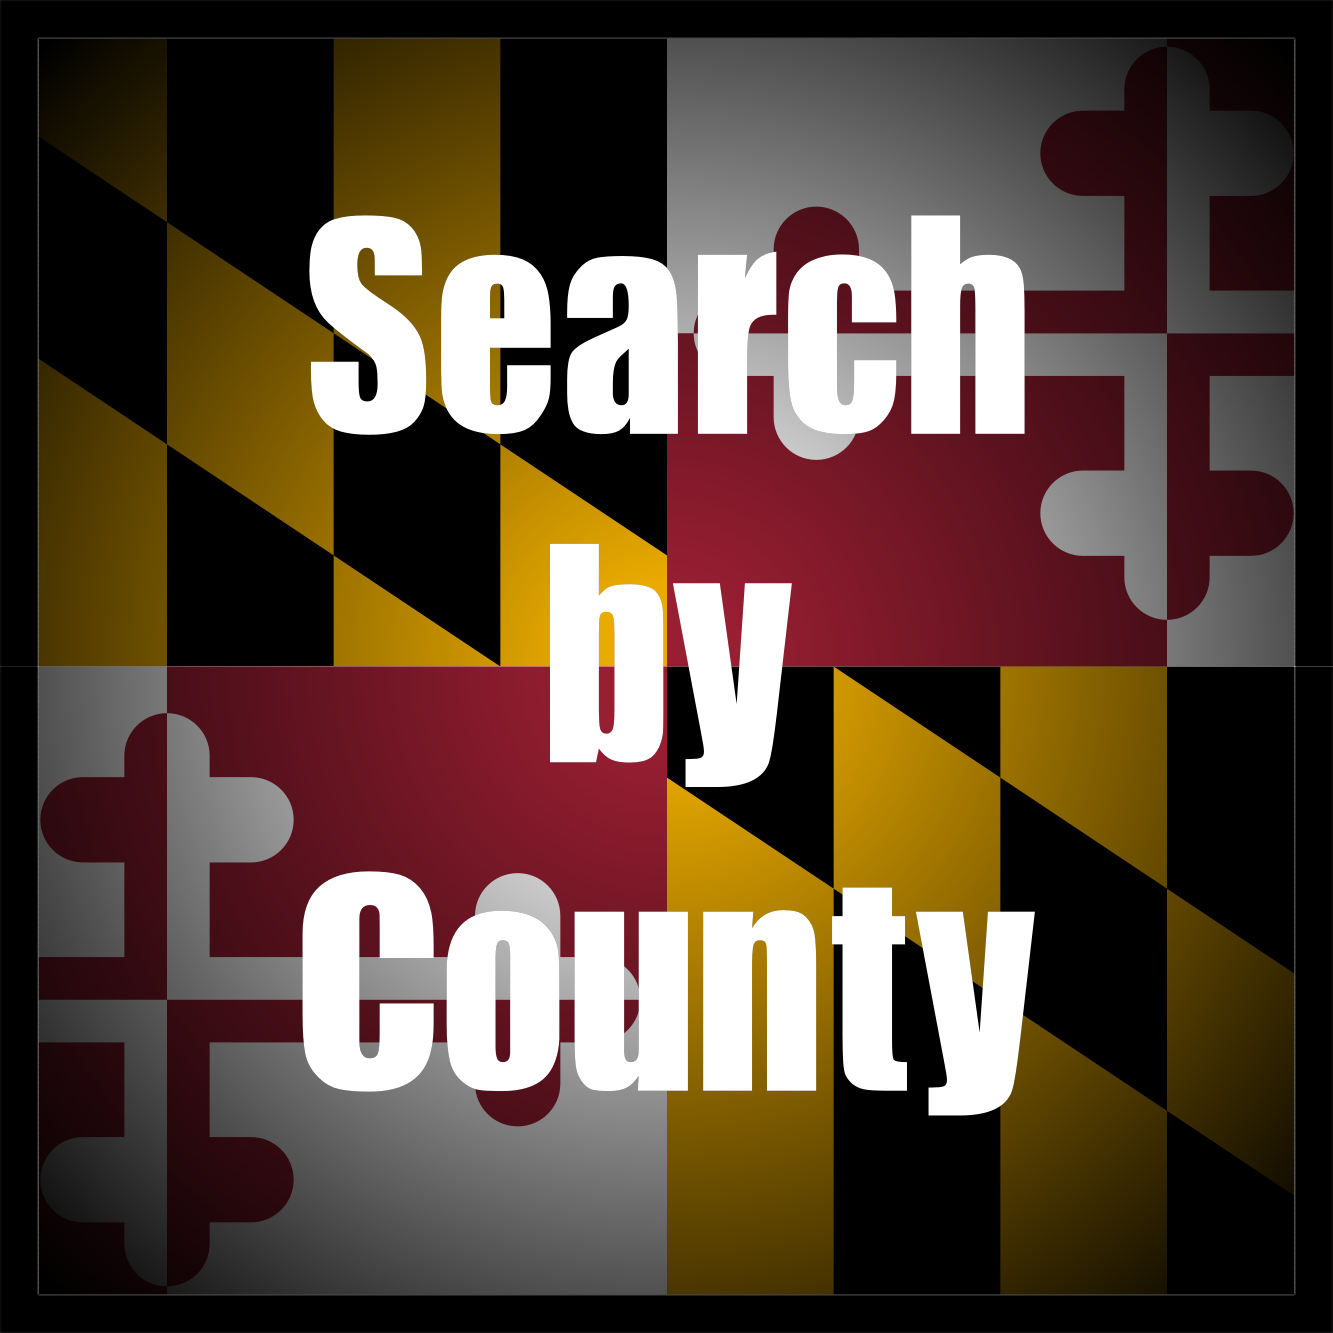 Search accurate and up-to-date listings of homes and real estate in Maryland by County!  Search the whole state of maryland!  Search real estate in charles county, search real estate in calvert county, search real estate in saint marys county, in MD.  Brought to you by your Southern Maryland Real Estate Agent, Marie Lally